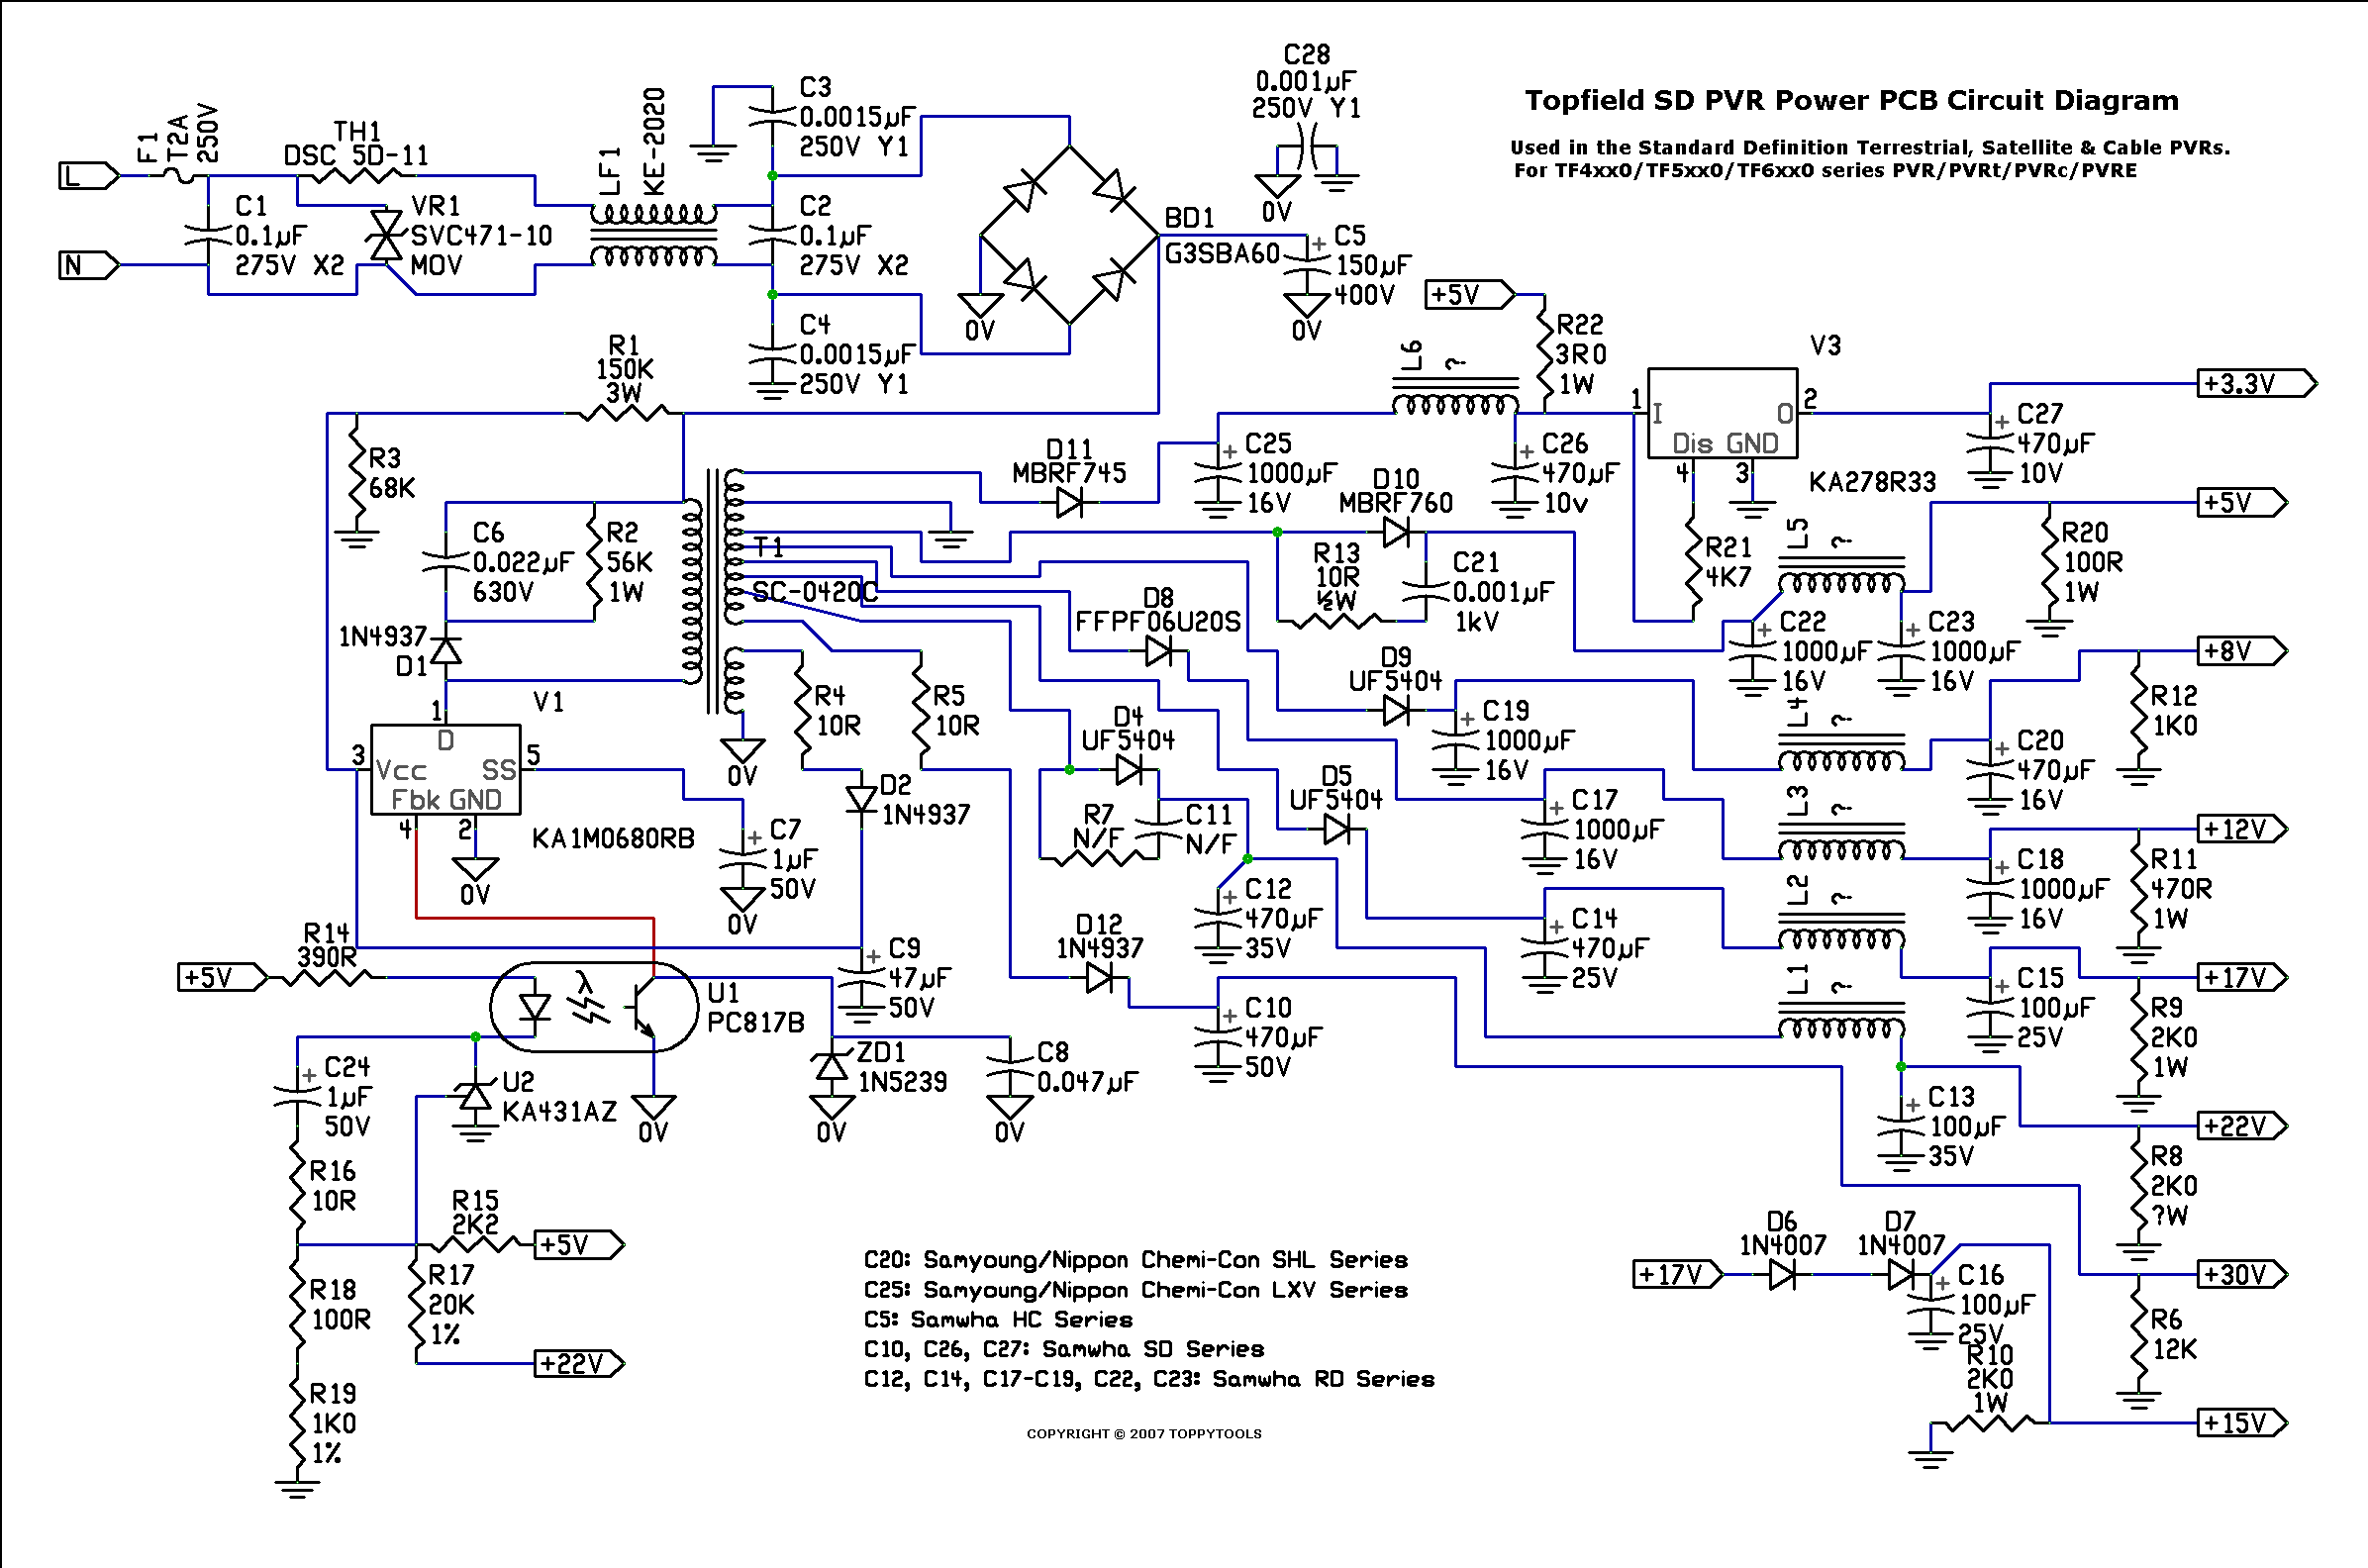 Topfield_SD-PVR_Power-Supply.png